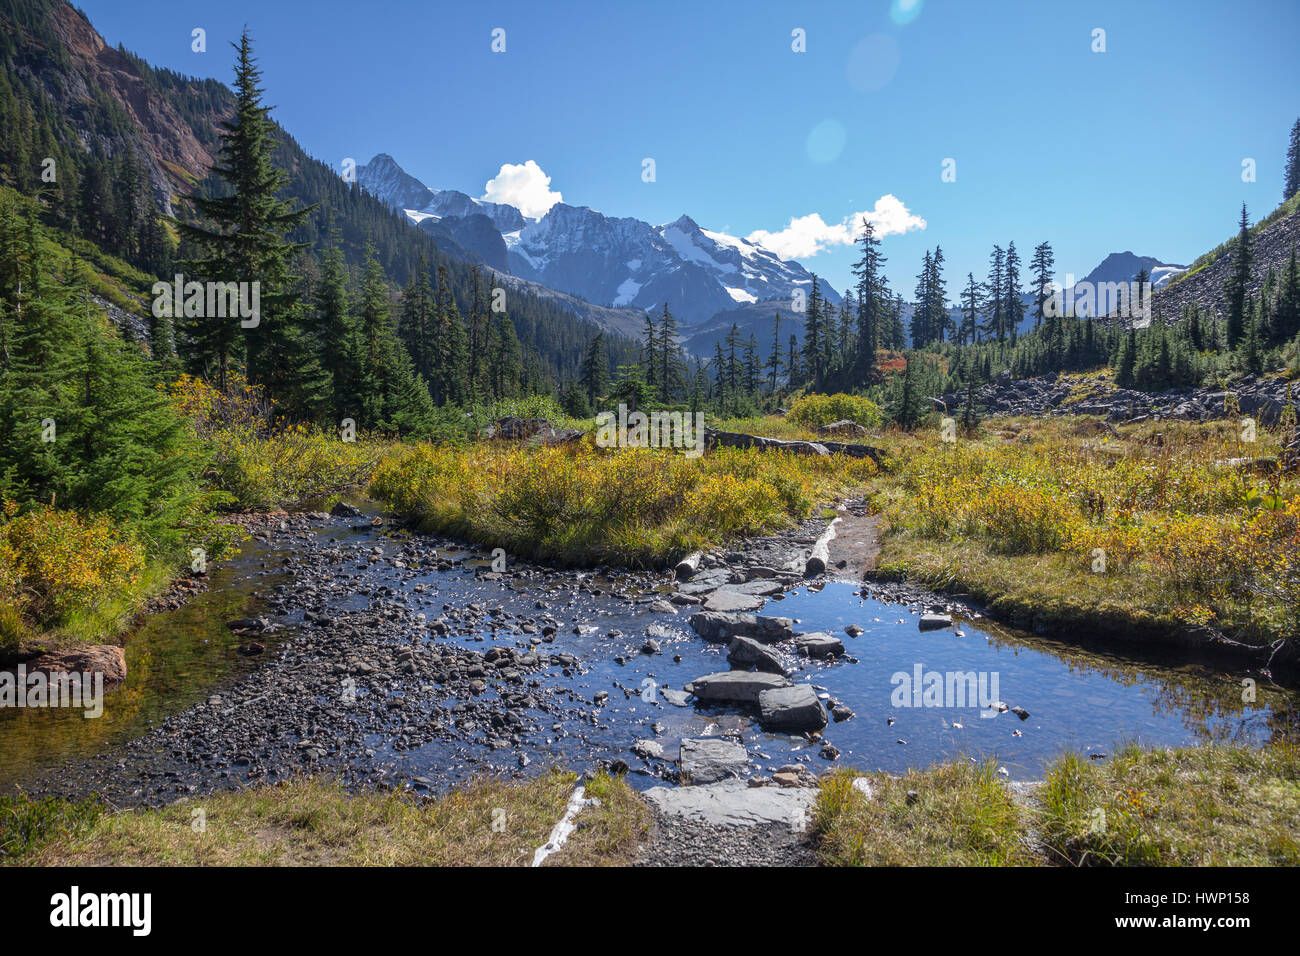 Shallow stream with stepping stones lies across the popular Lake Ann hiking trail near Mount Baker, WA Stock Photo